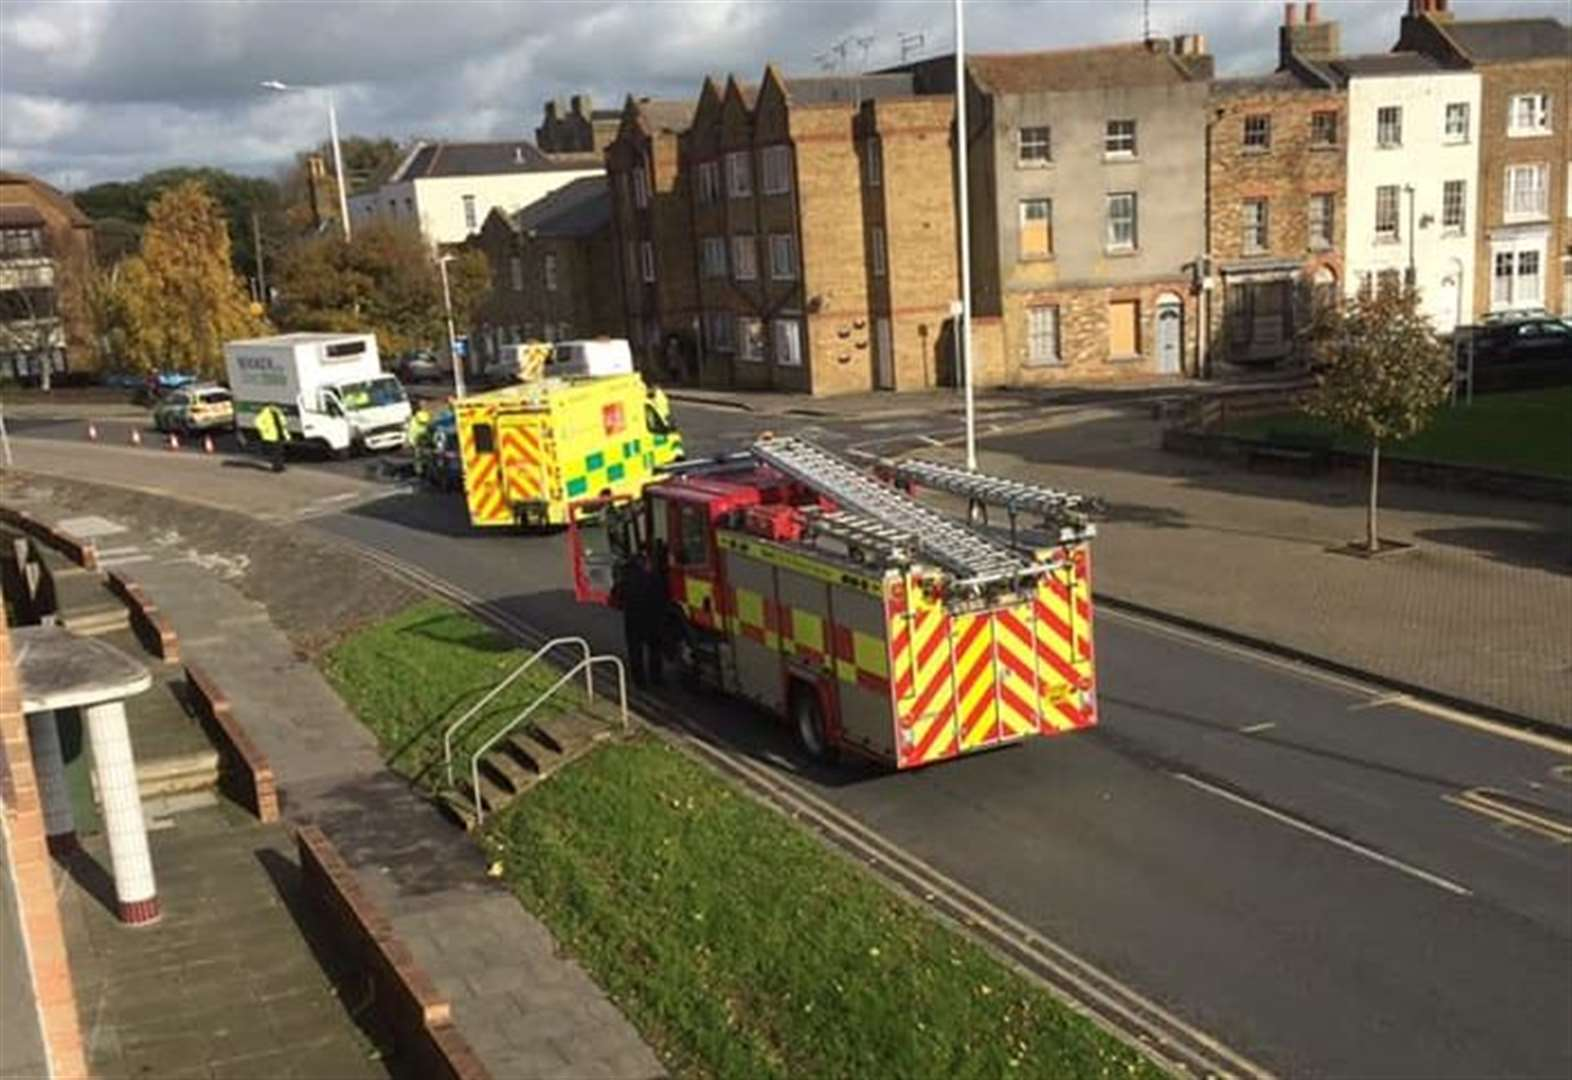 Roads shut due to serious crash